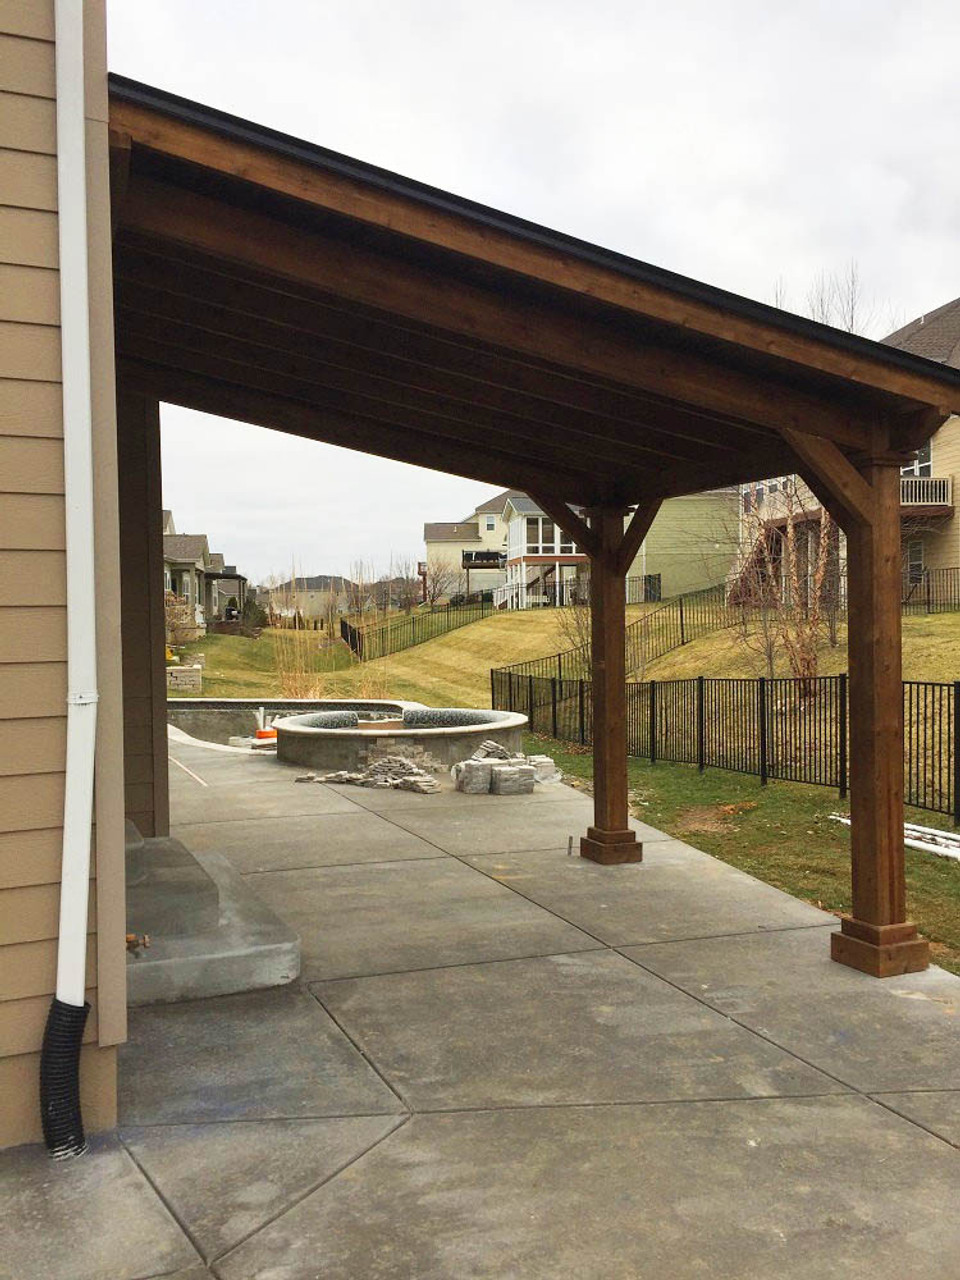 Structurally sound 12x9 Wall-mounted Western Cedar Pavilion